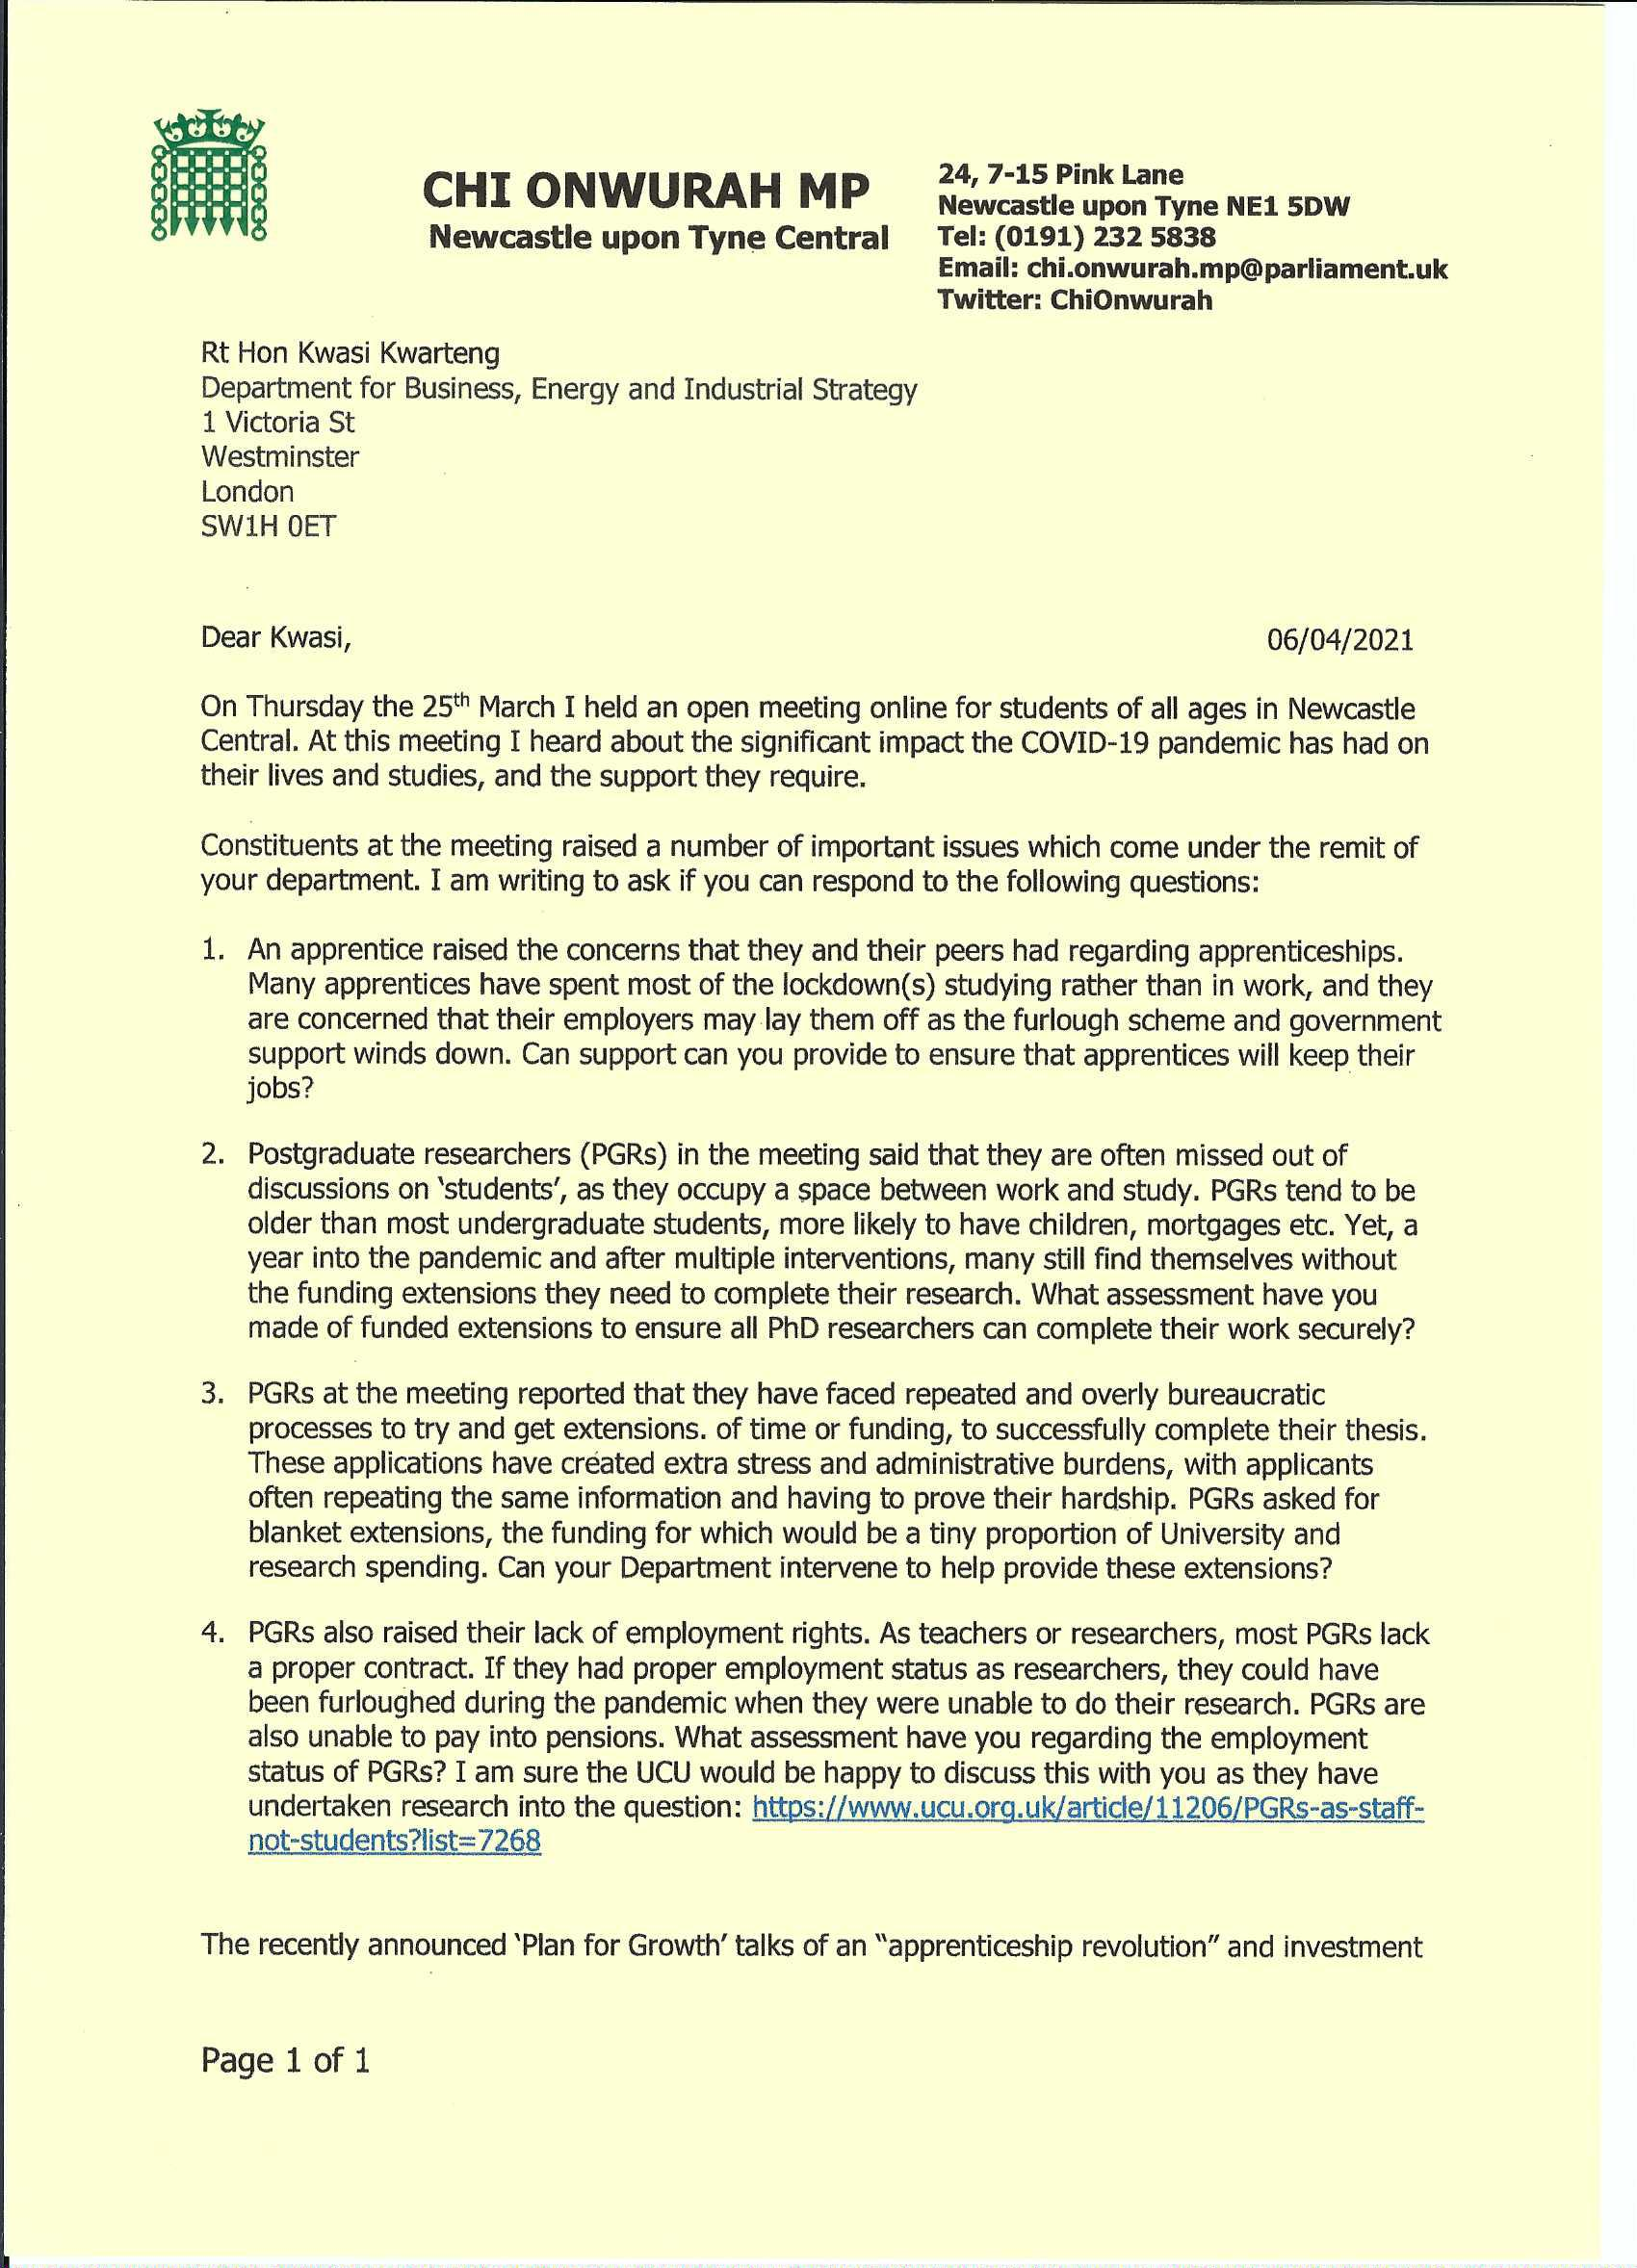 Letter to Kwasi Kwarteng Secretary of State for Business, Energy & Industrial Strategy taking up issues after an open online meeting with students